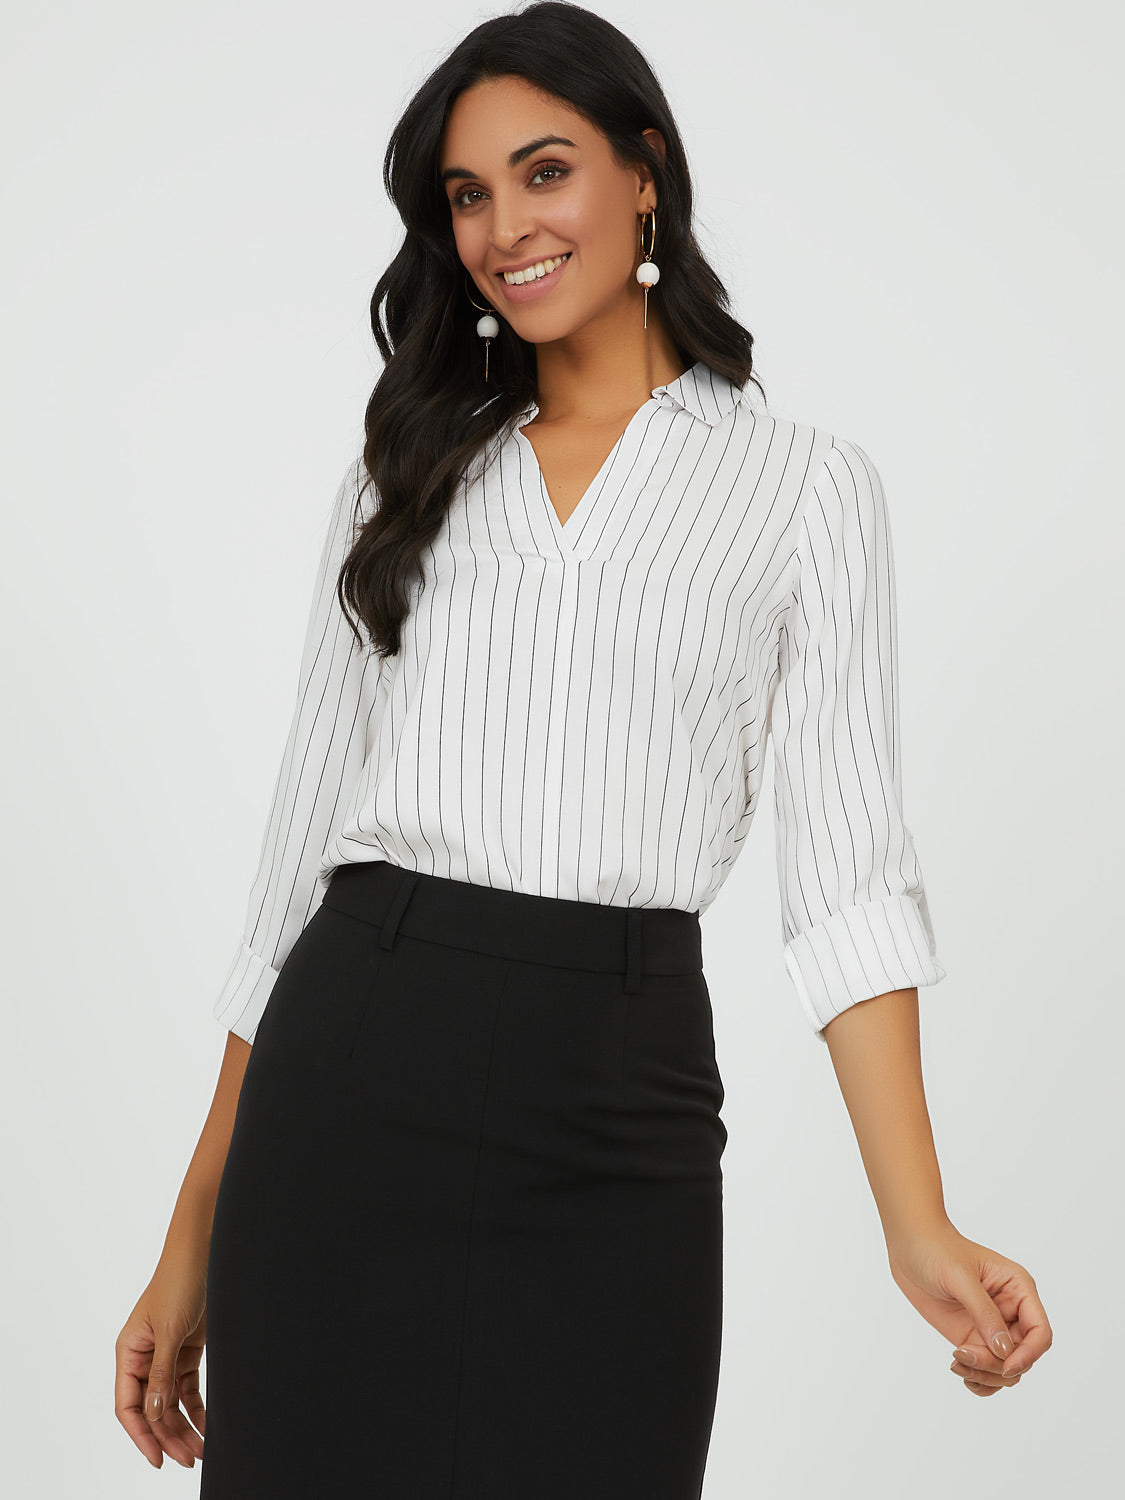 ¾ Rolled-Up Sleeve Stripe Top